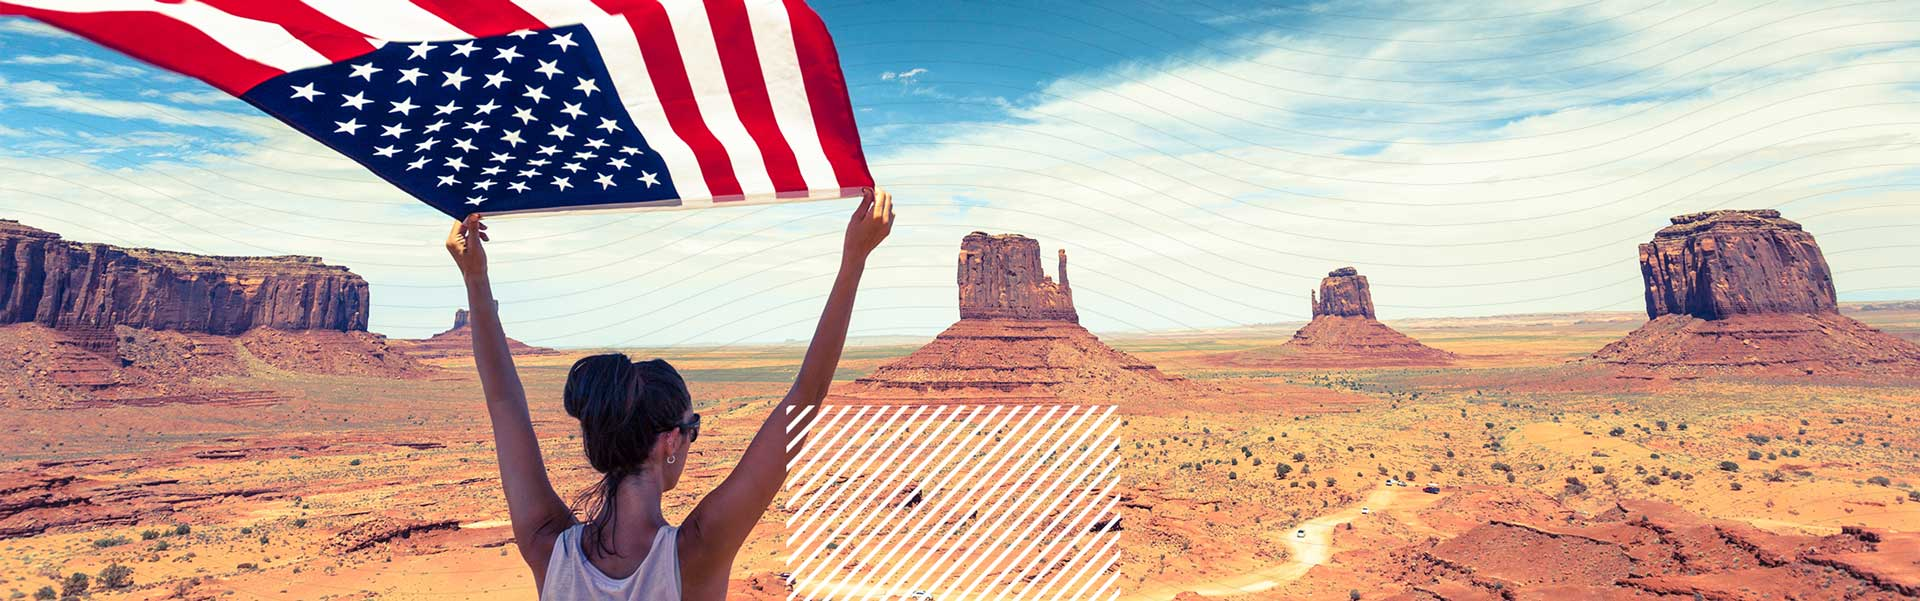 woman holding usa flag in desert